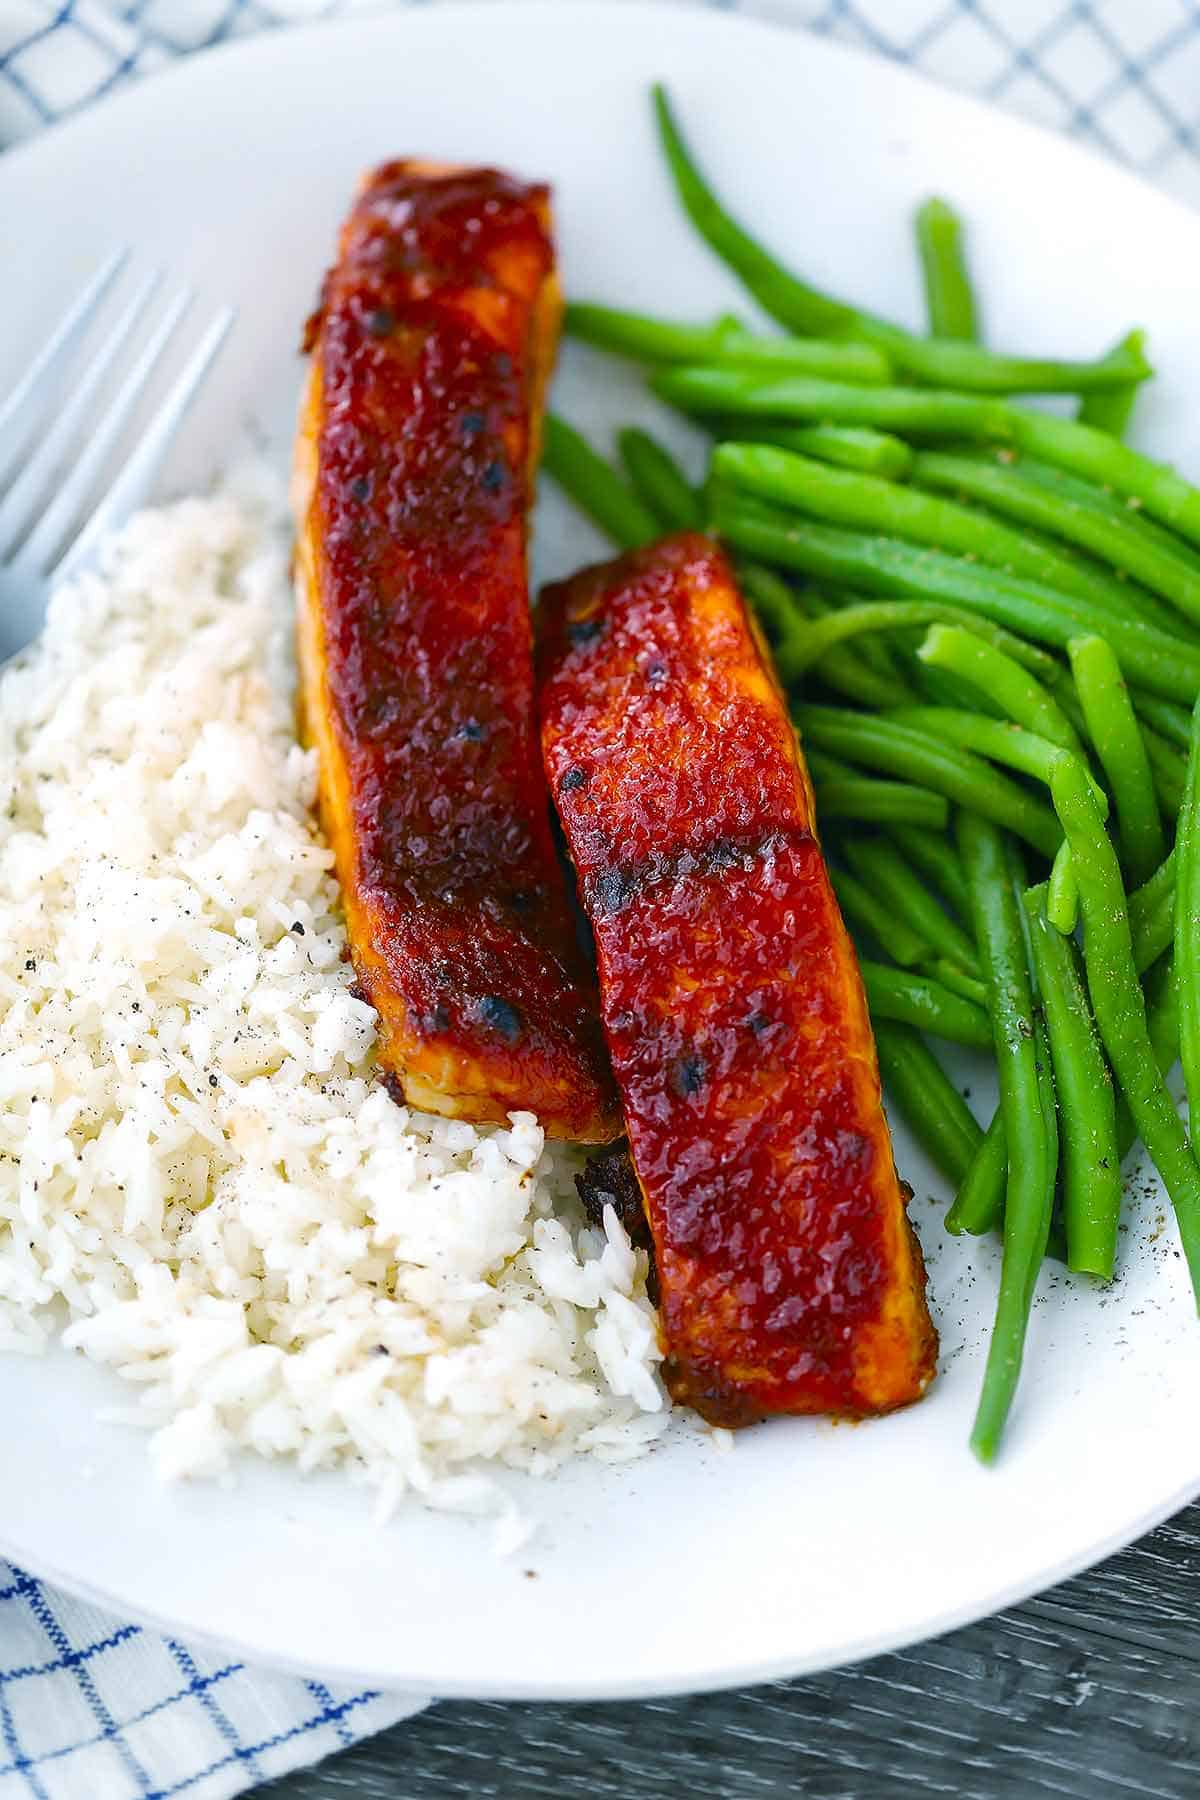 A plate of barbecue salmon with green beans and rice.